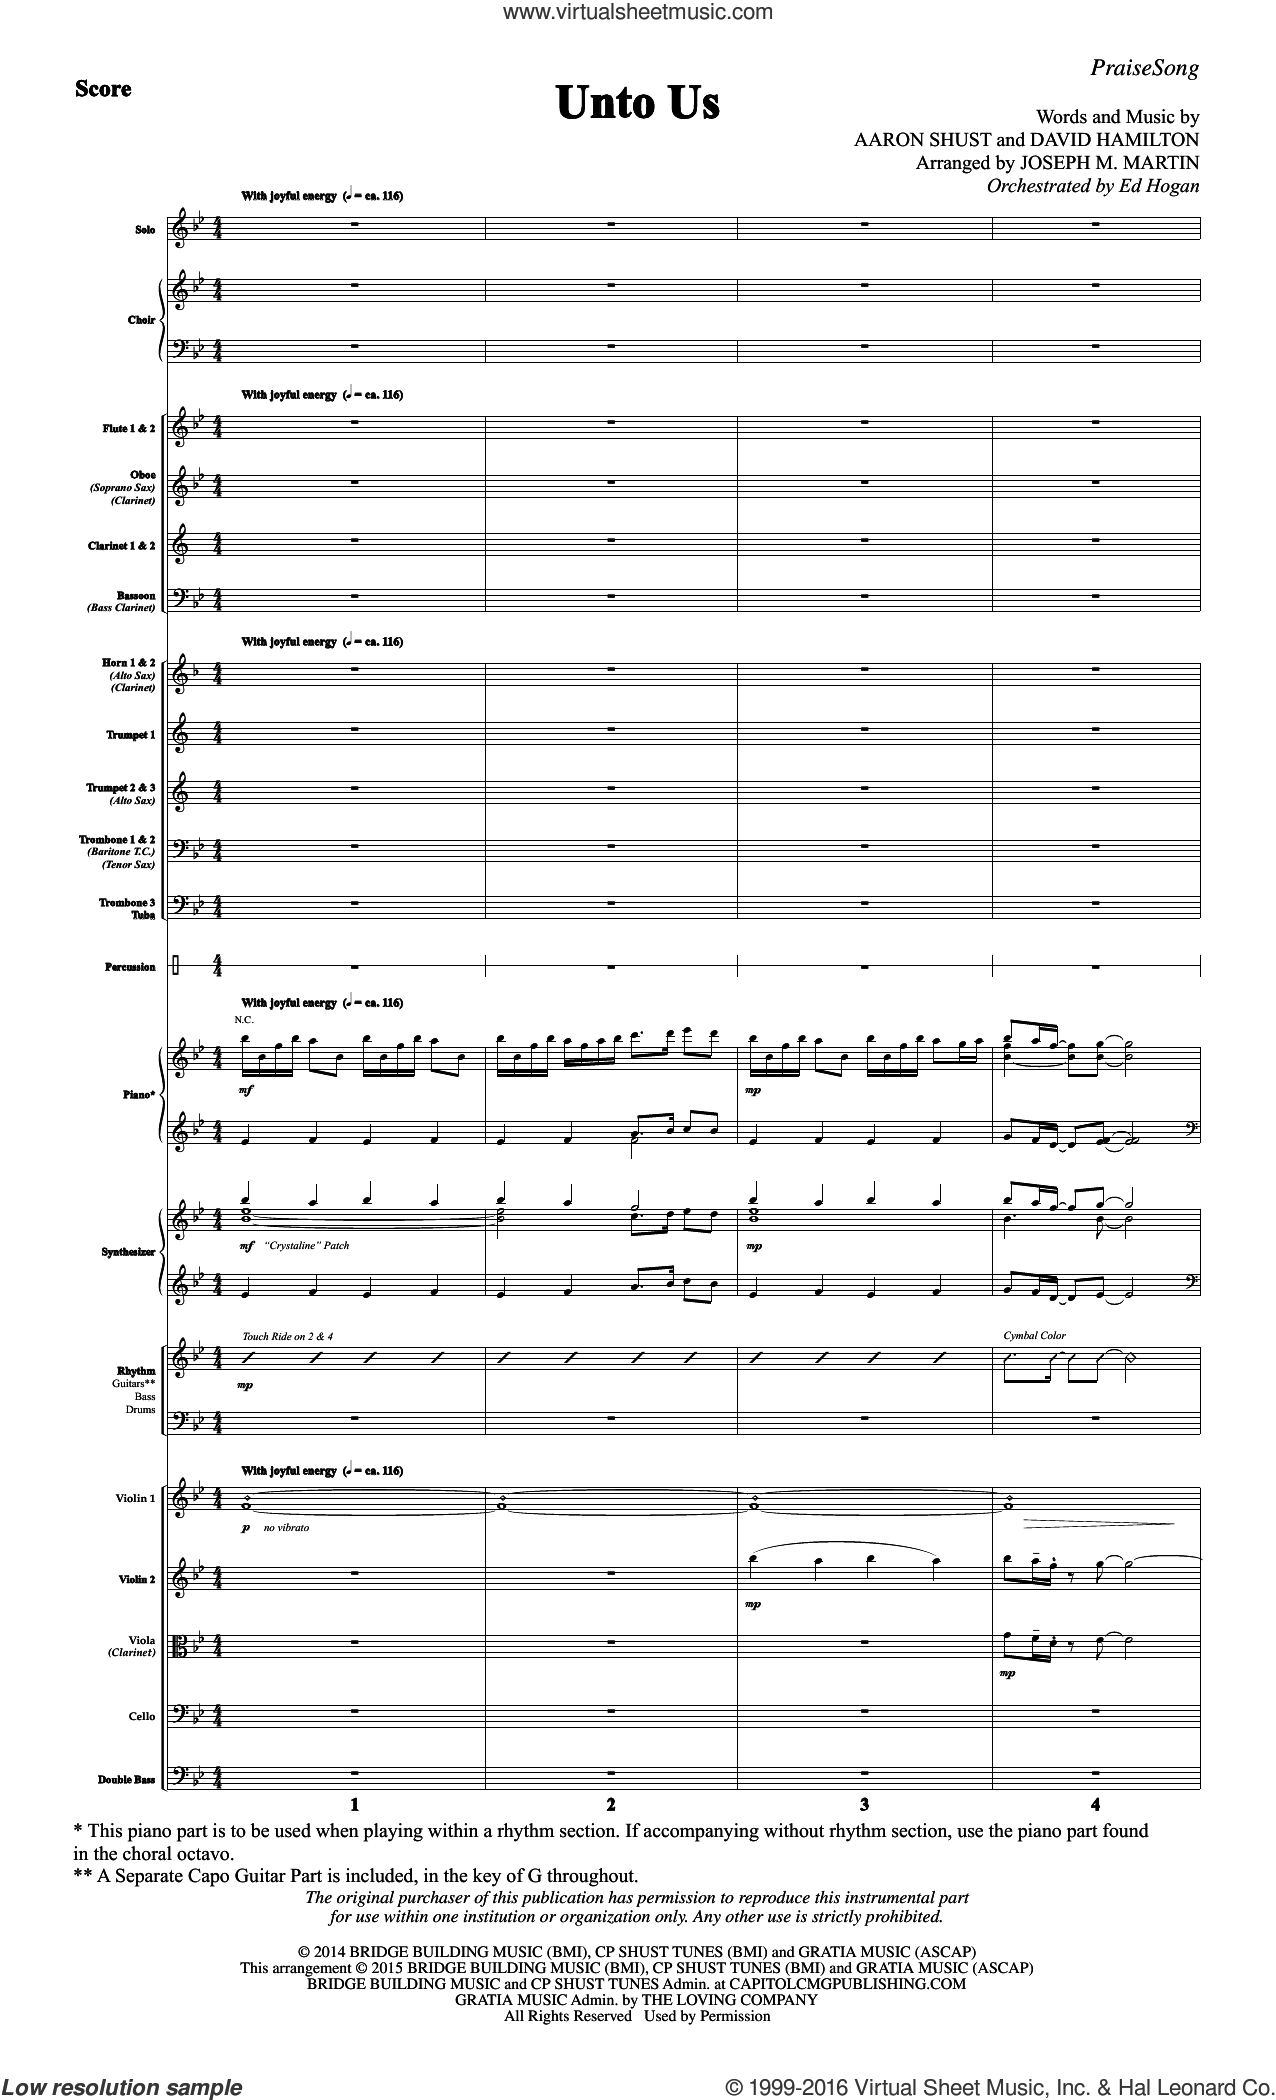 Unto Us (COMPLETE) sheet music for orchestra by Aaron Shust, Joseph M. Martin and David Hamilton. Score Image Preview.